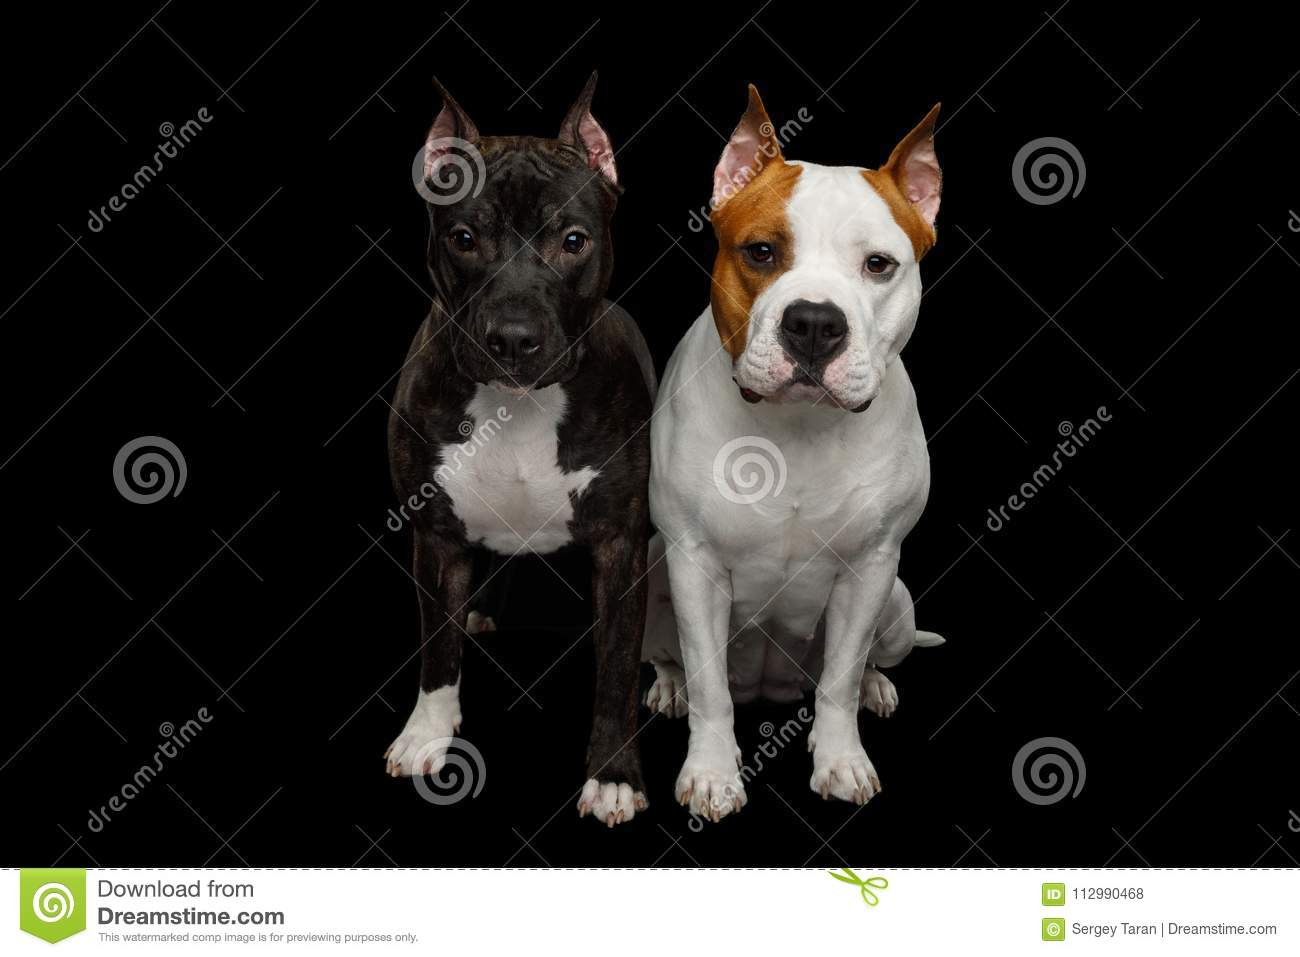 Two American Staffordshire Terrier Dogs Isolated on Black Background